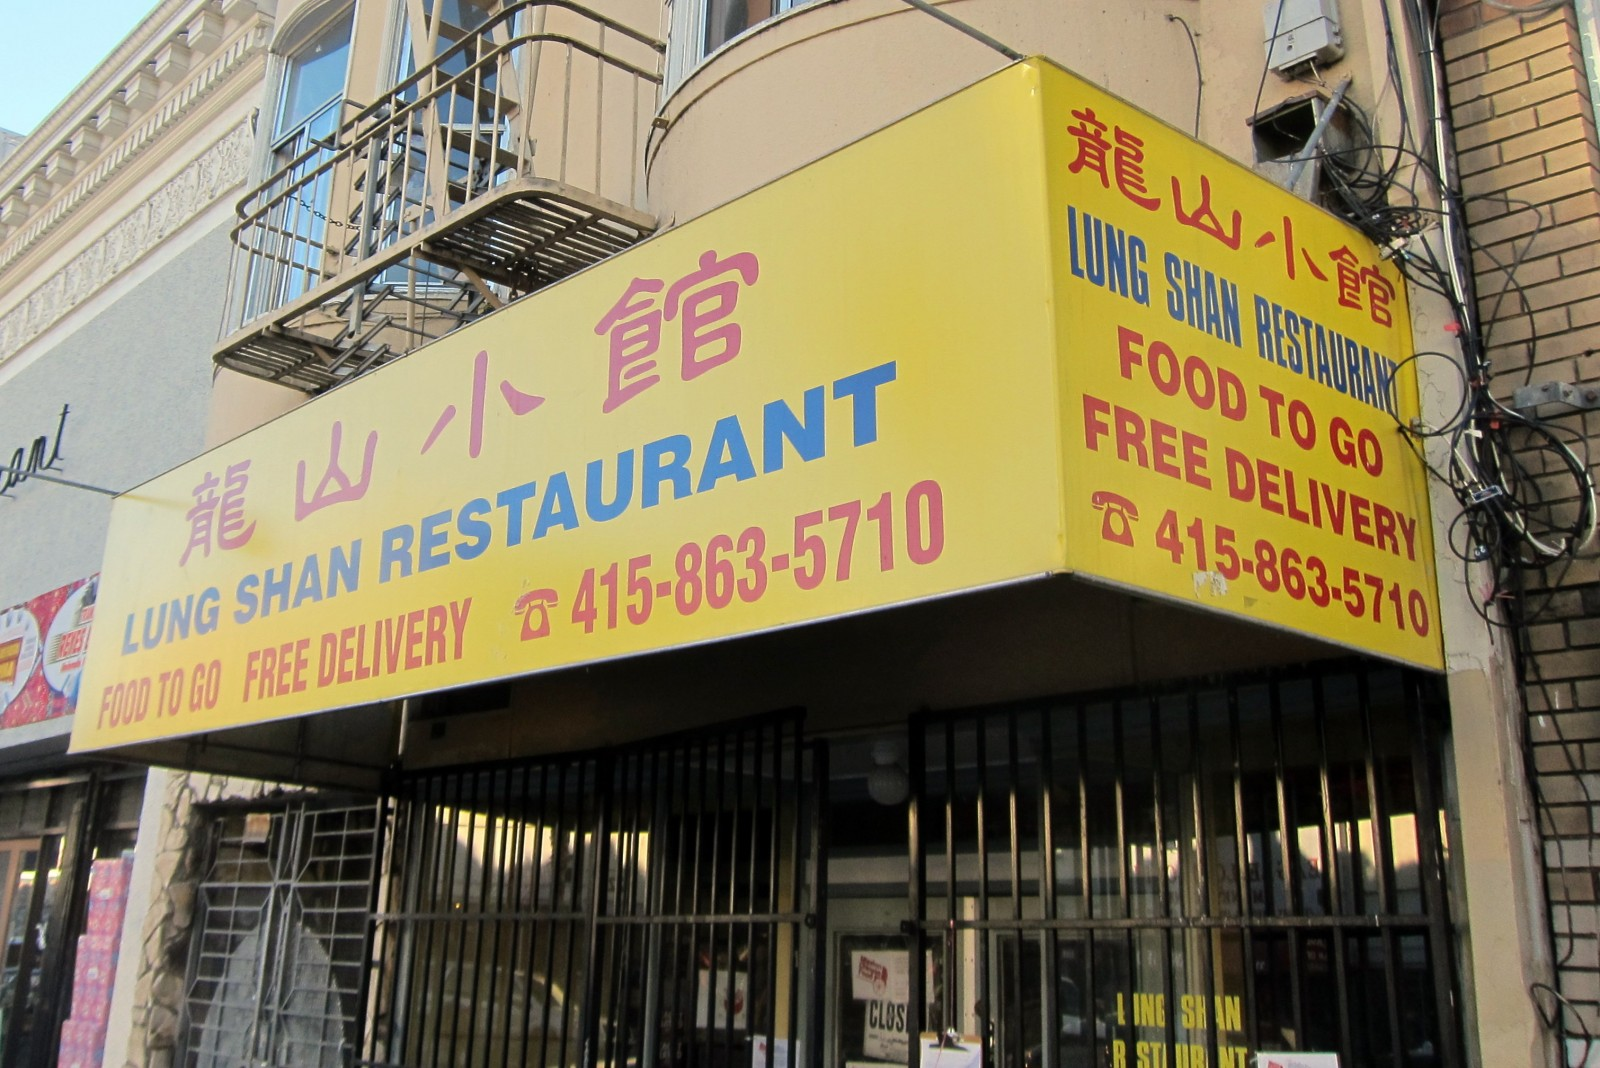 The outside awning of Mission Chinese restaurant